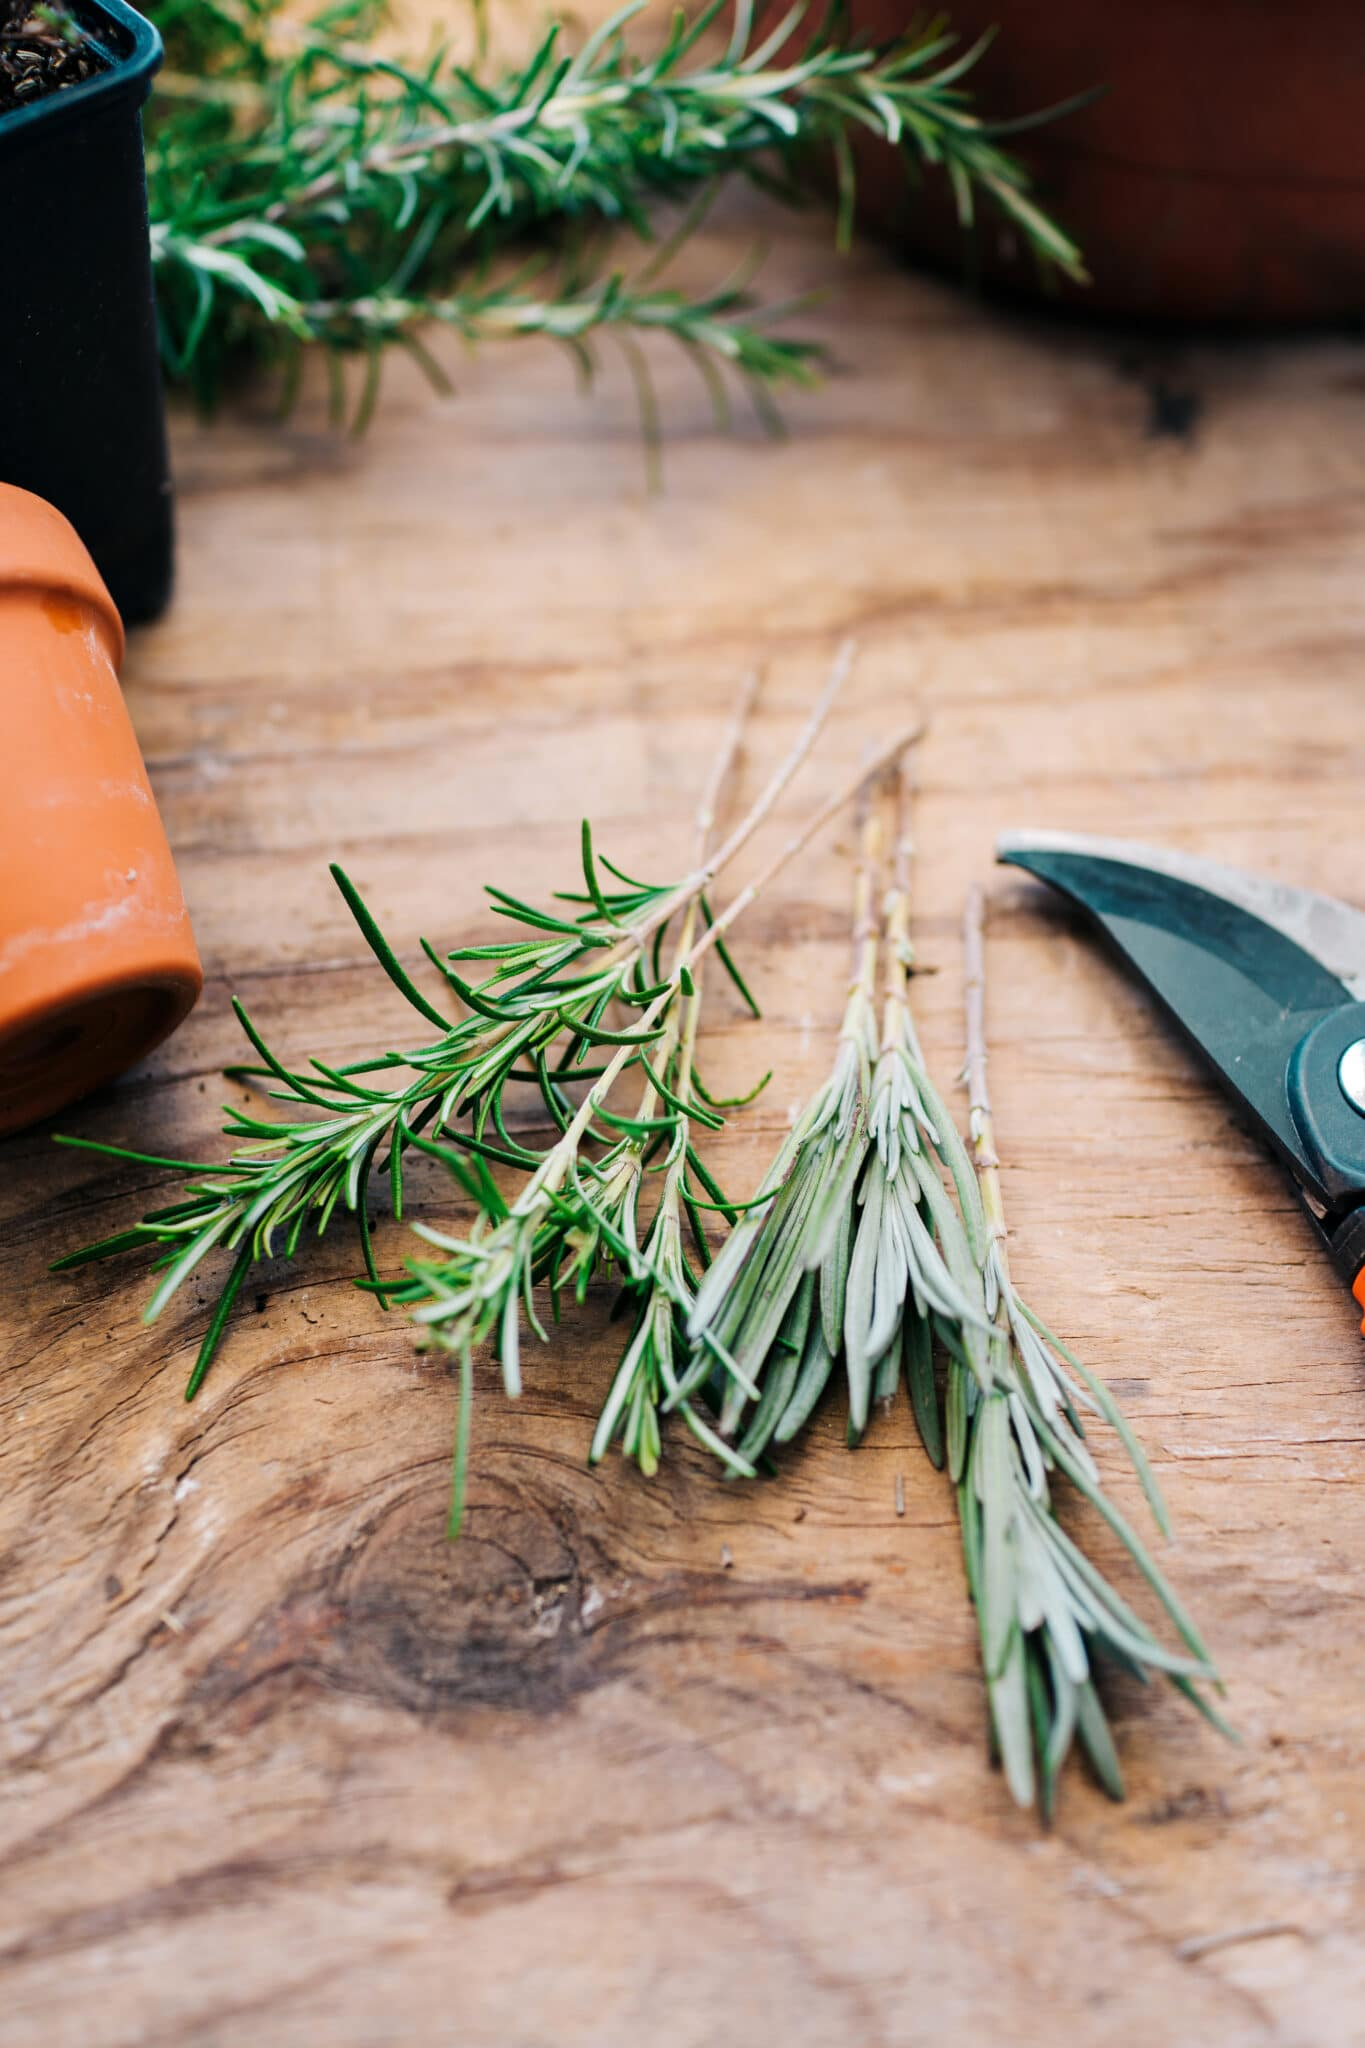 Lavender cuttings on a rustic wooden backdrop.